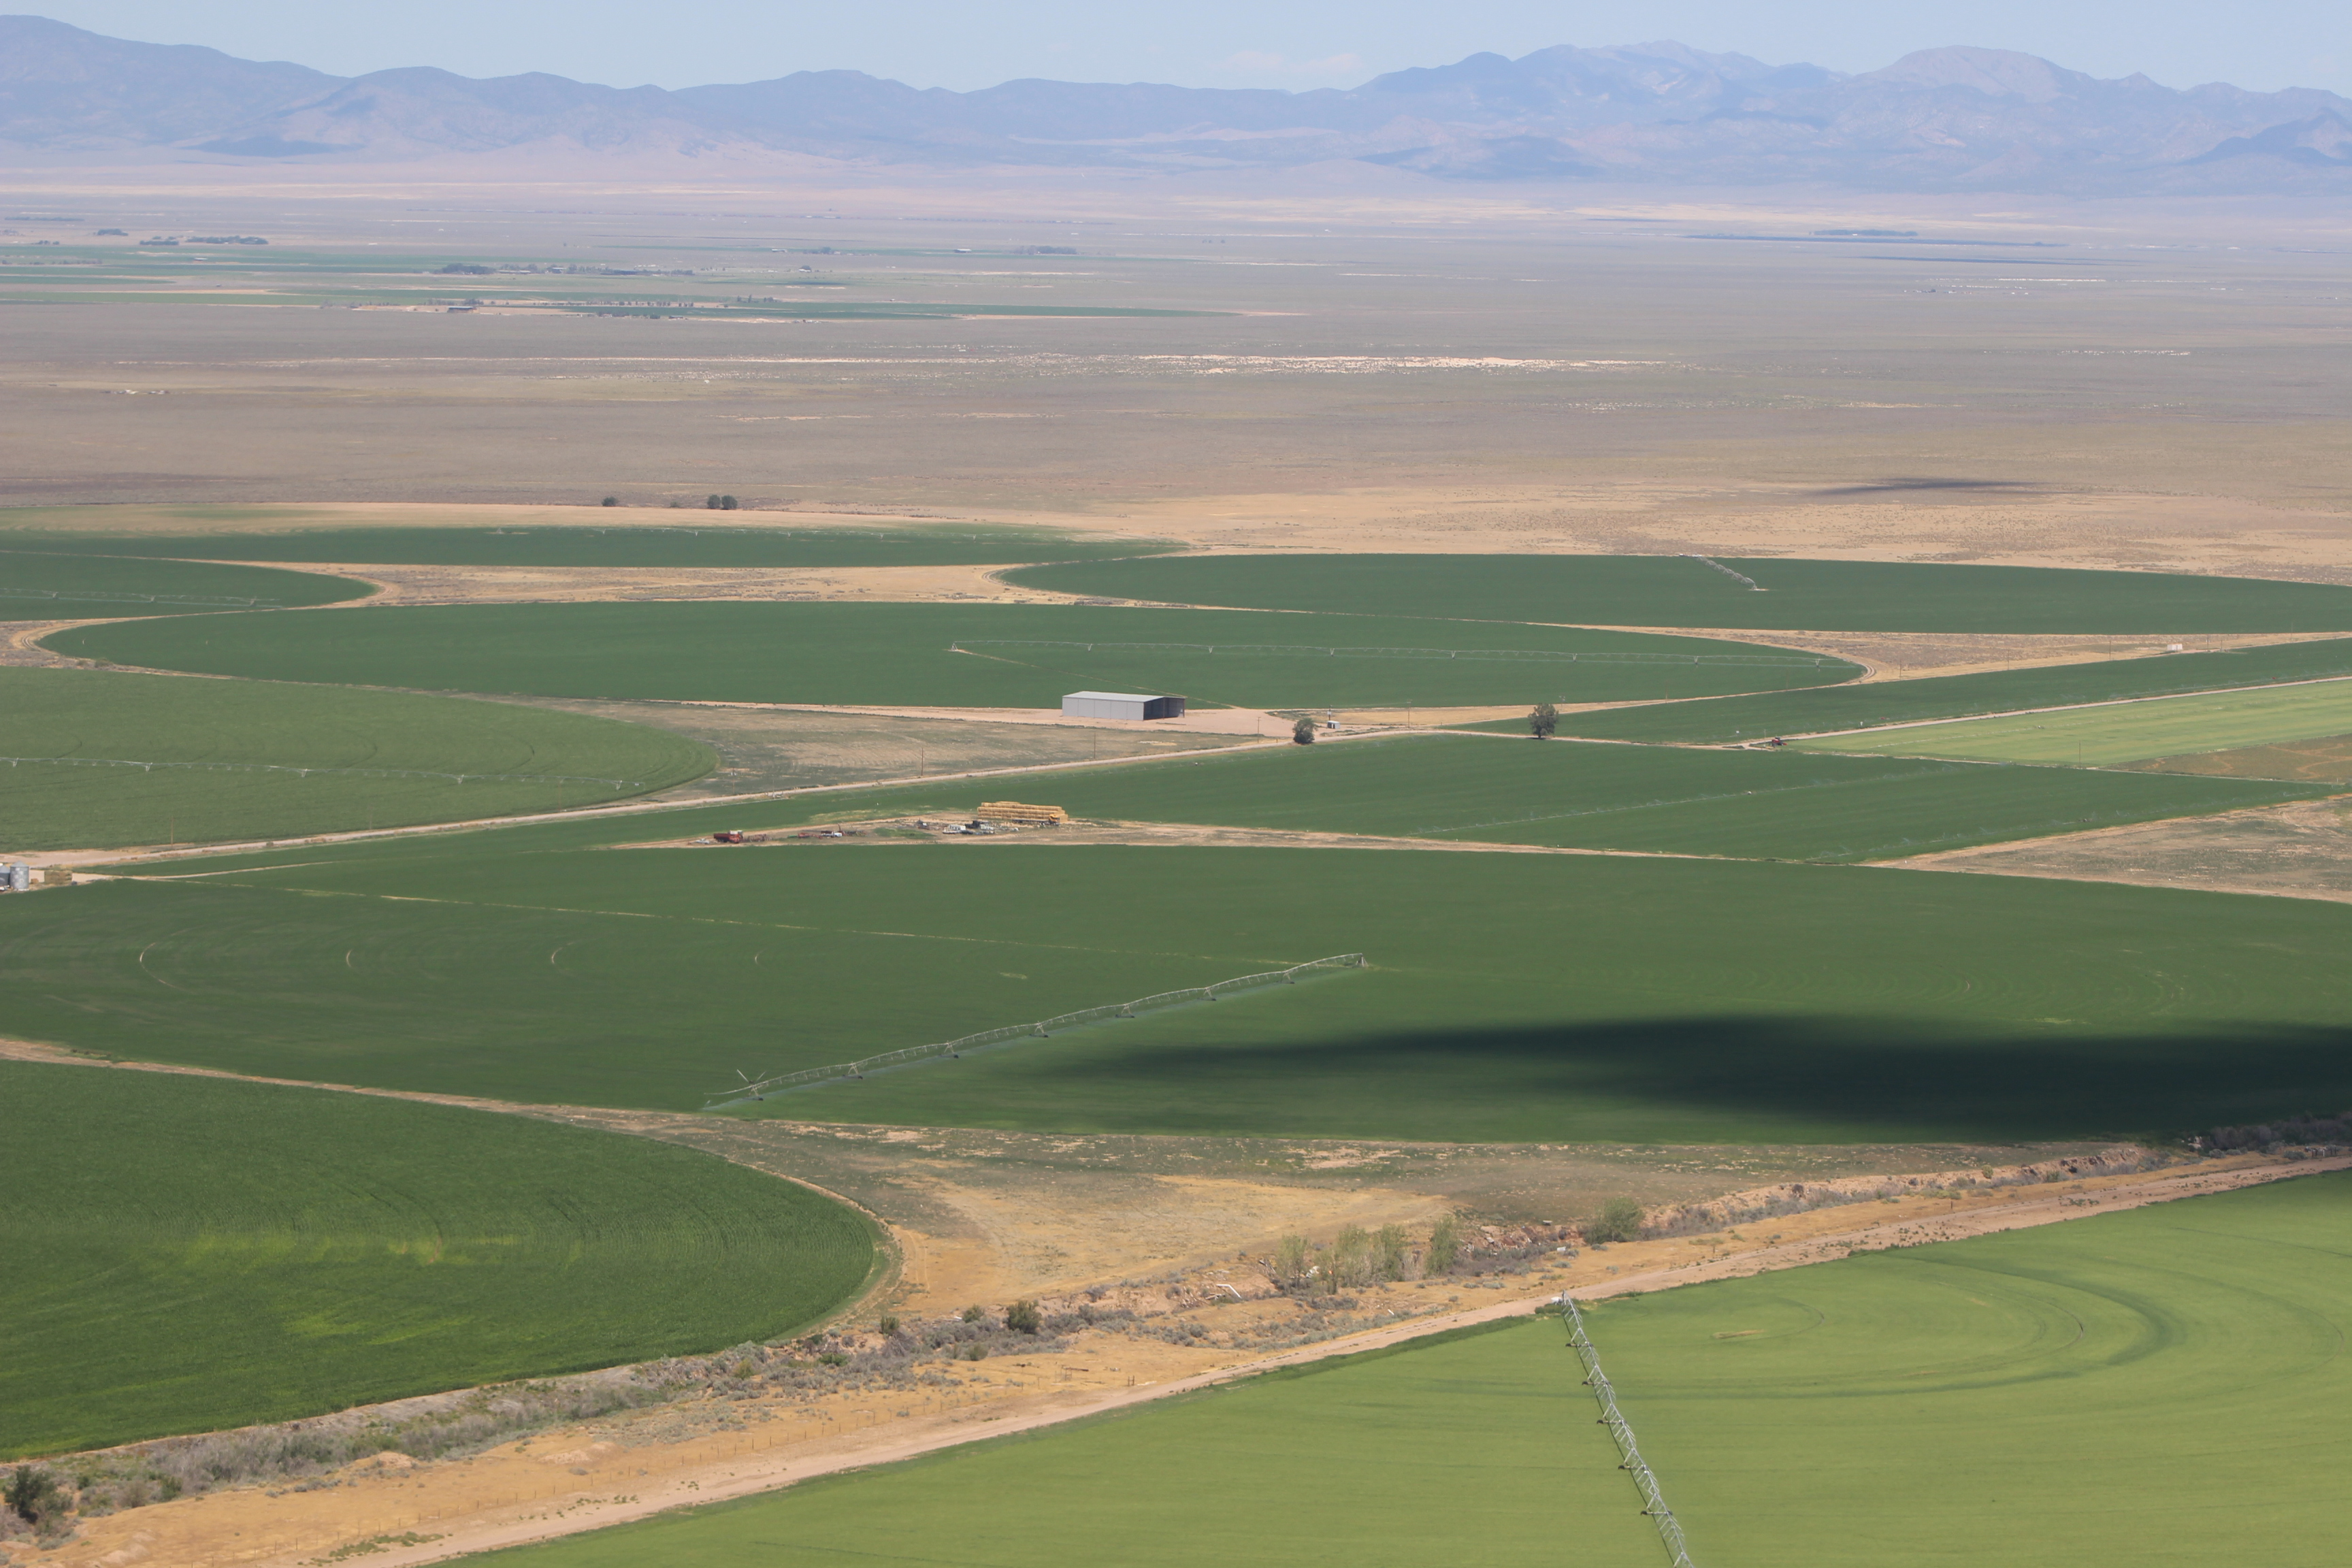 Crop circles where farmers grow their goods dot the landscape on the west end of Iron County. Iron County, Utah, July 15, 2016 | Photo by Tracie Sullivan, St. George News / Cedar City News